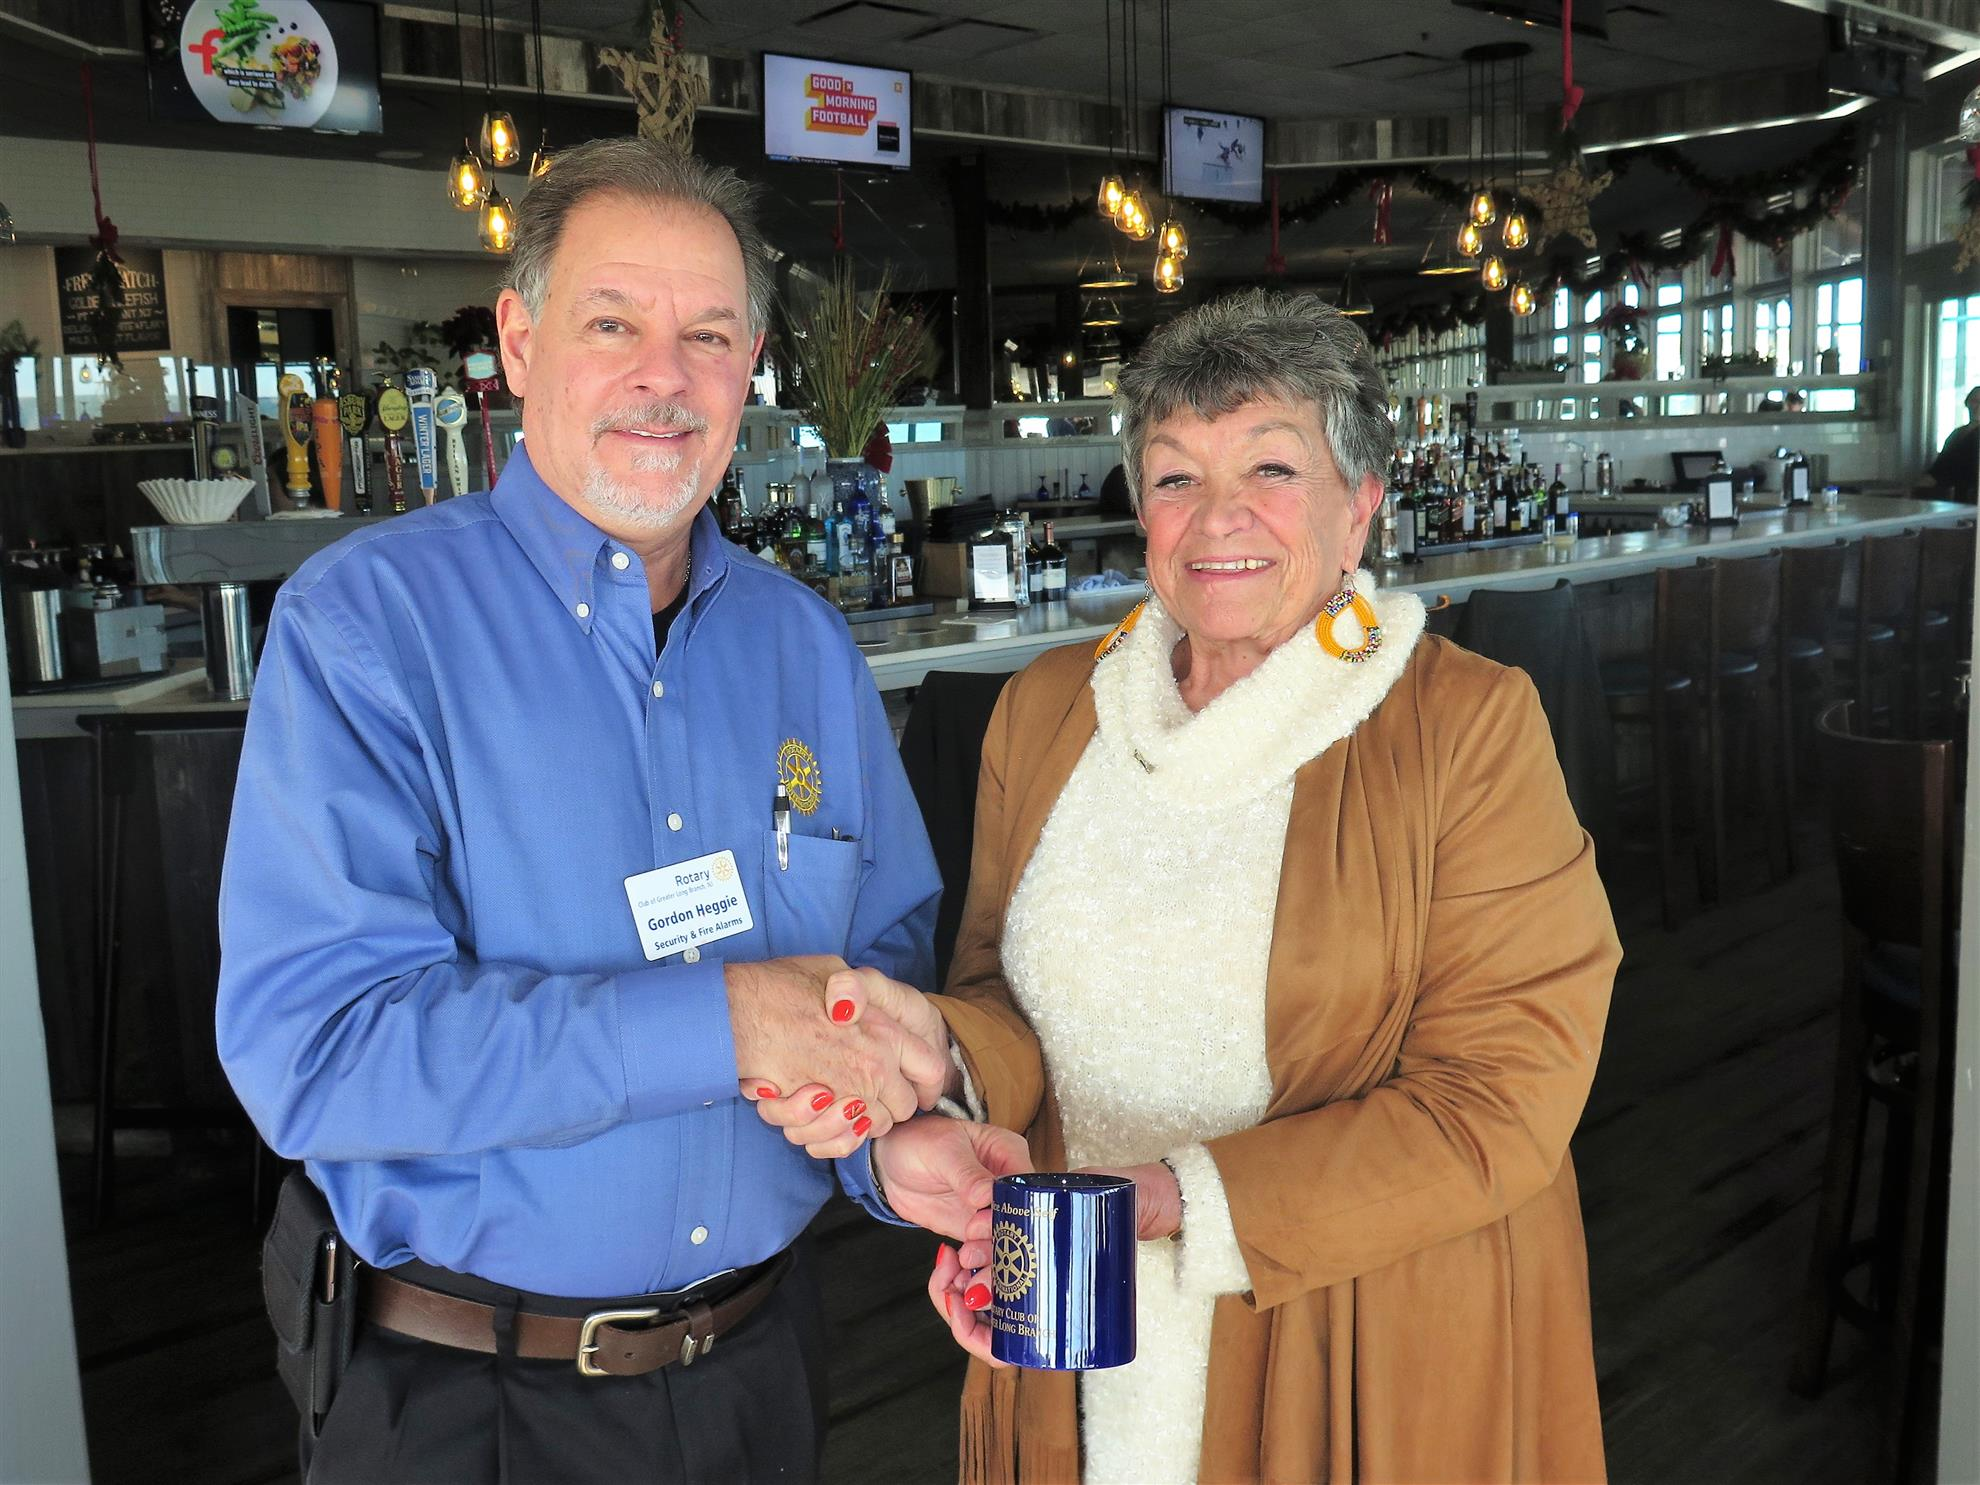 Rotary Club of Greater Long Branch President-elect Gordon Heggie presents guest speaker Sylvia Allen with gift.